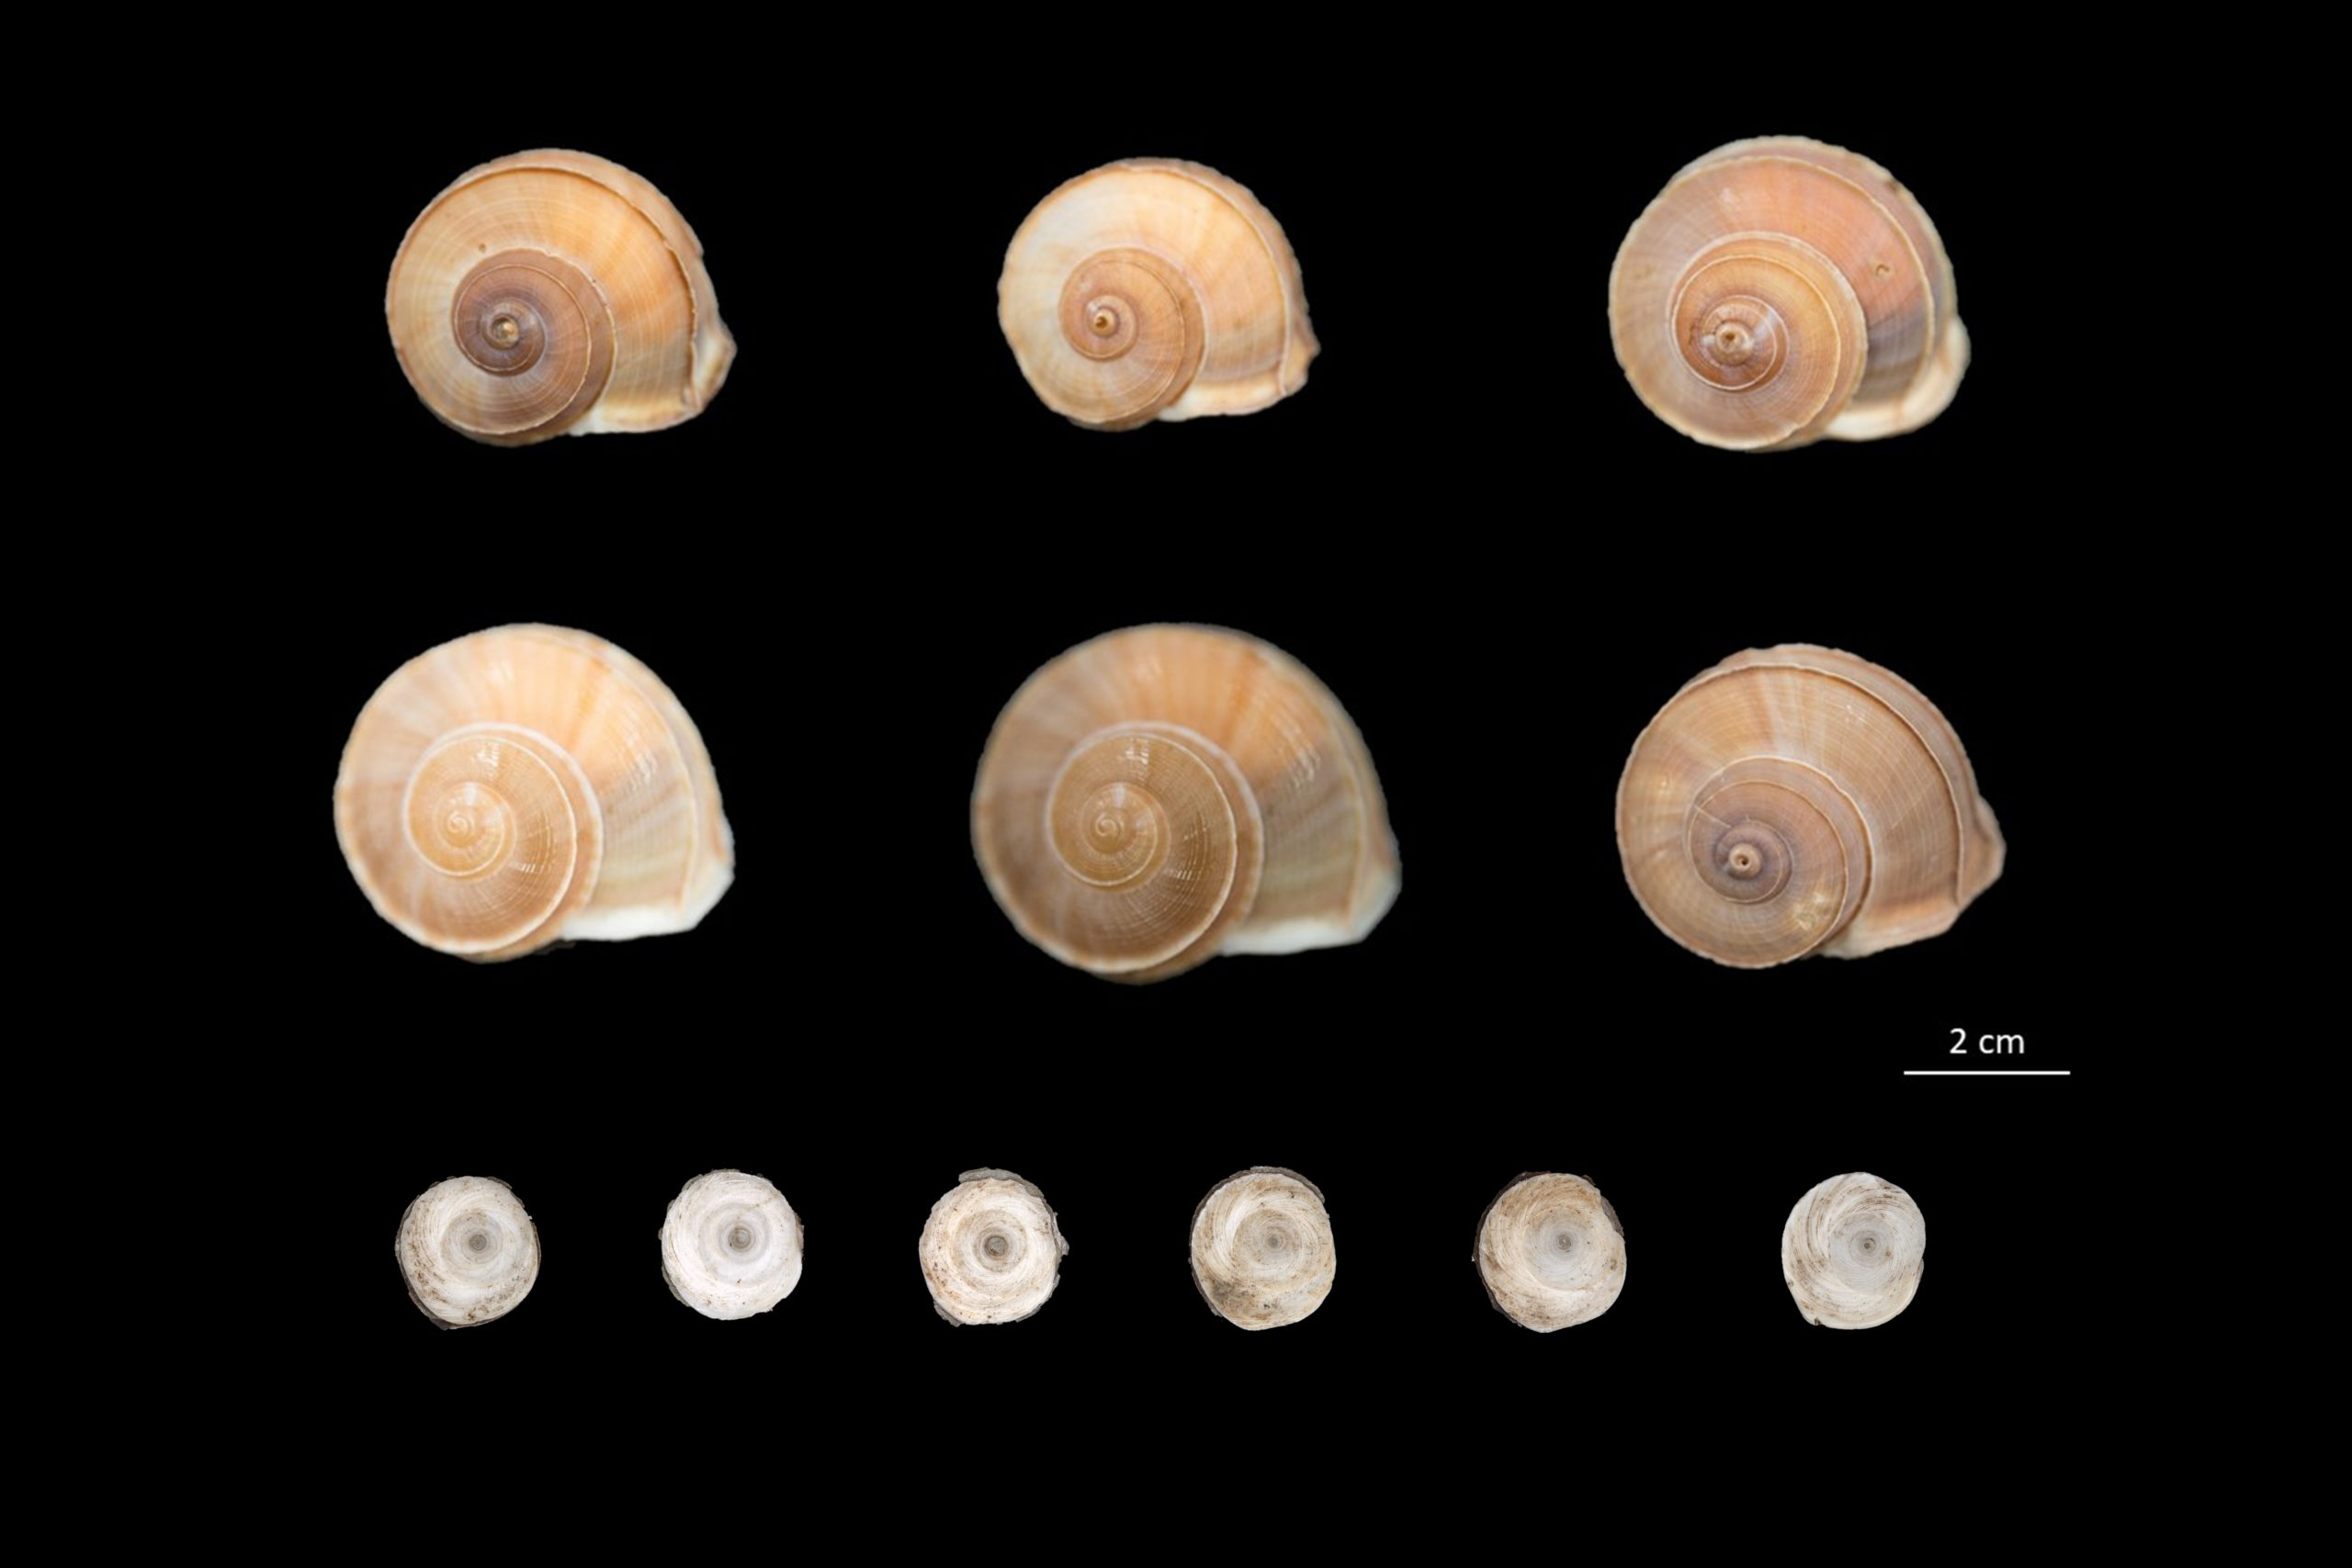 Photograph illustrating terrestrial snails with spiral shells in a light to dark brown color and small cream opercula samples.